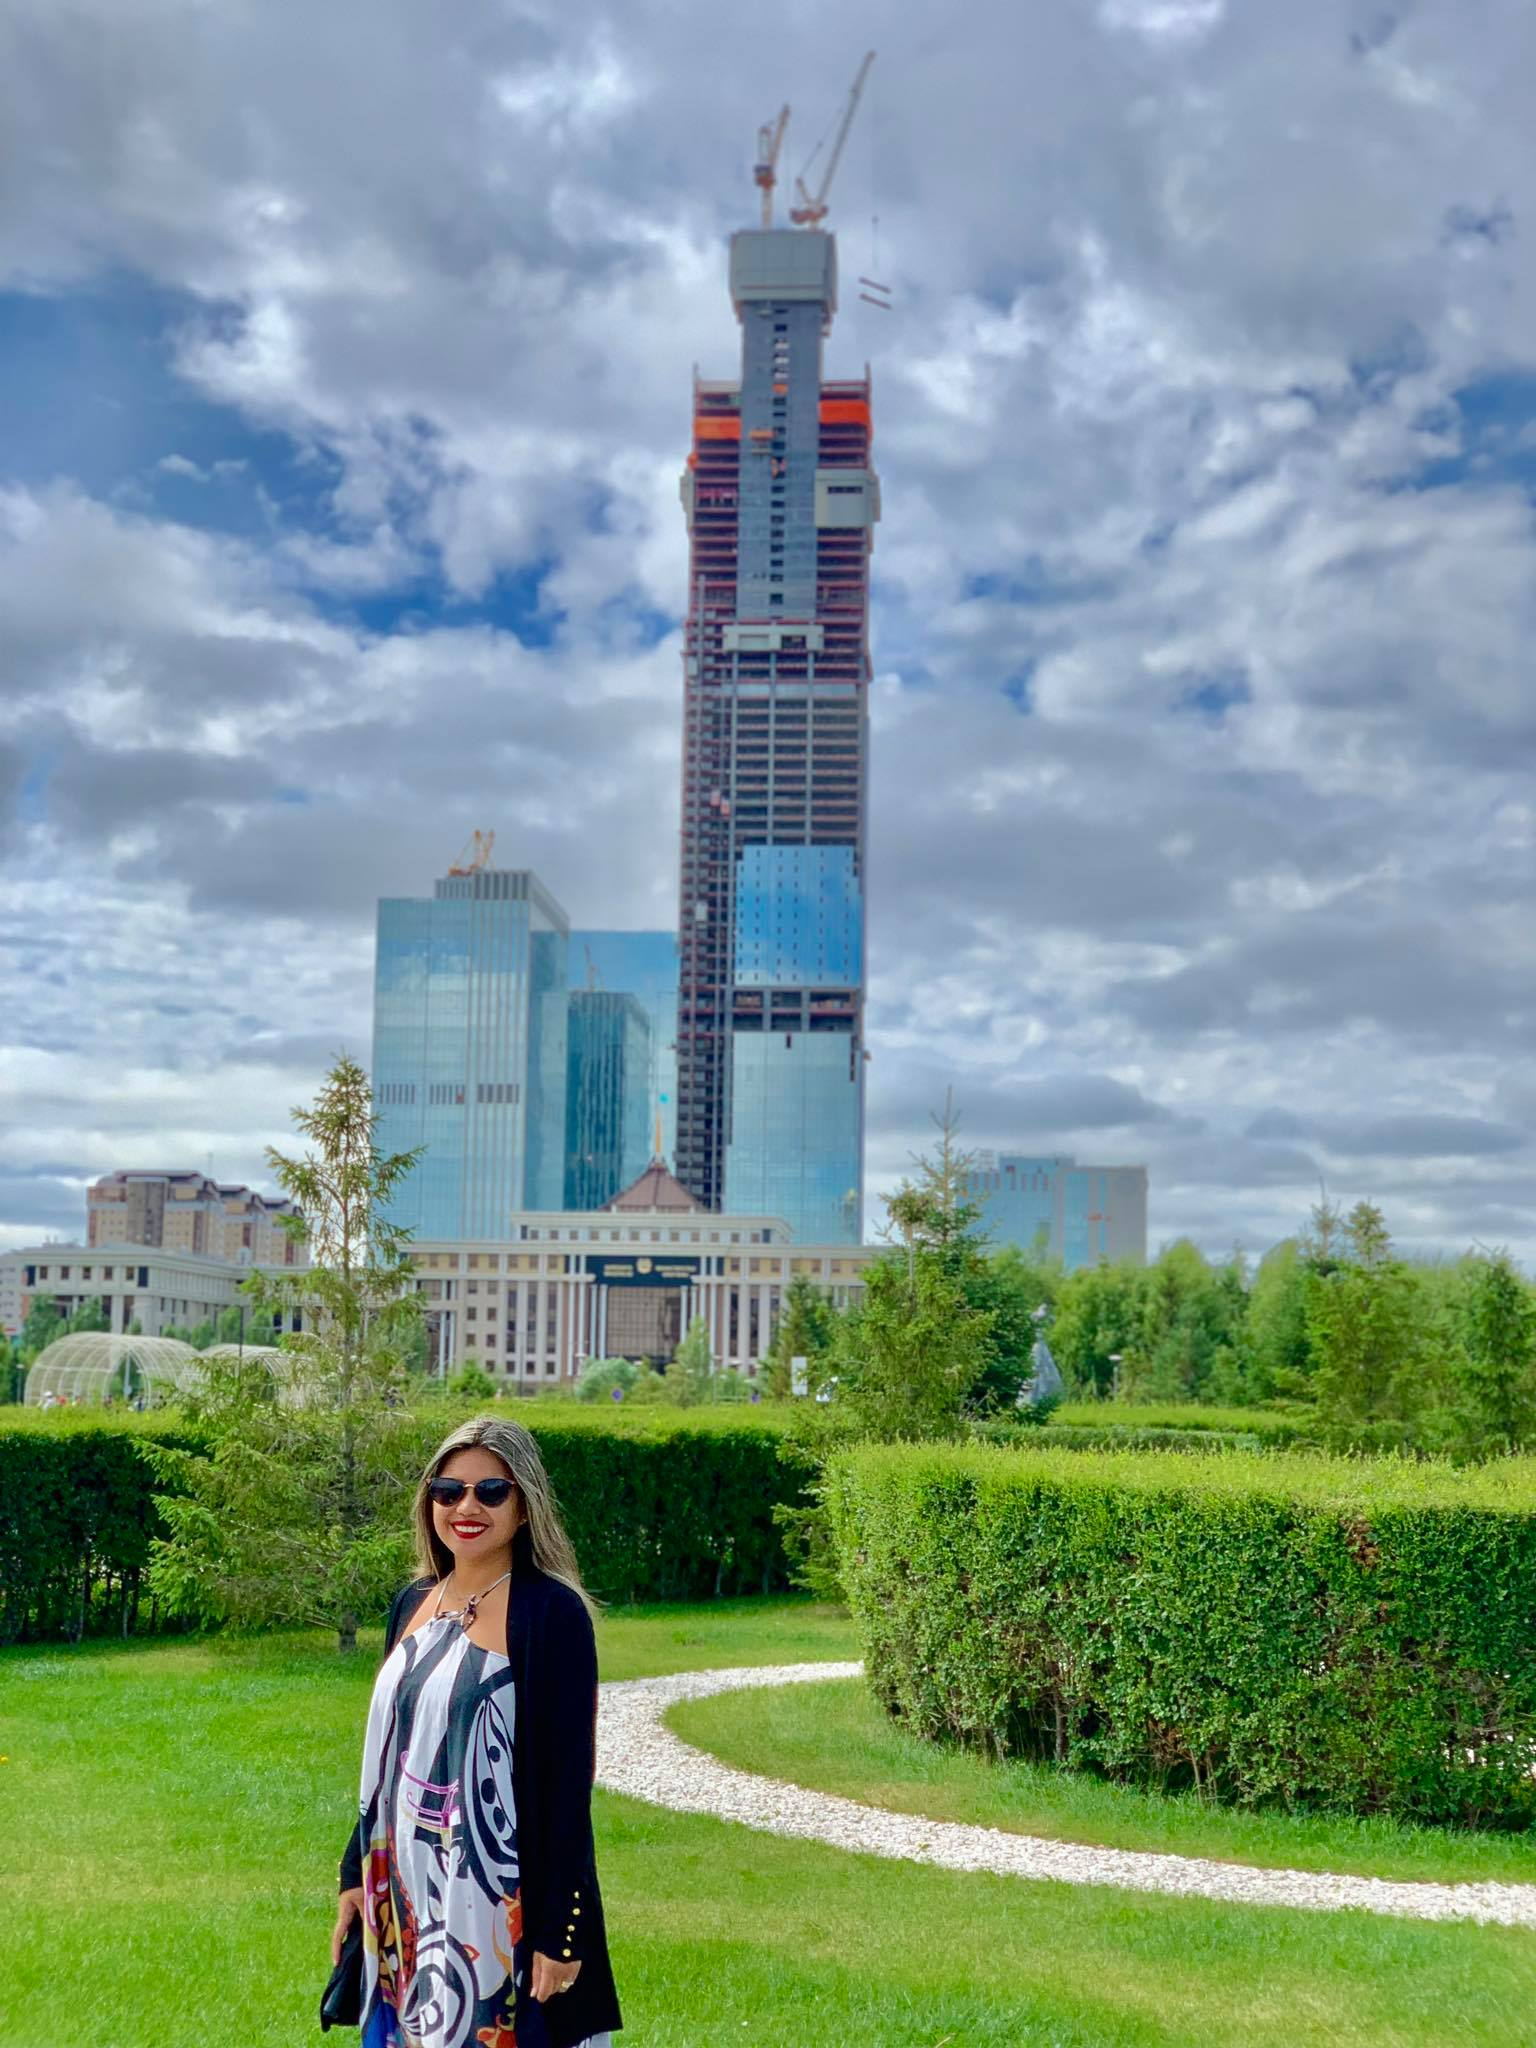 Kach Solo Travels in 2019 Nursultan  Astana - the City of the Future33.jpg